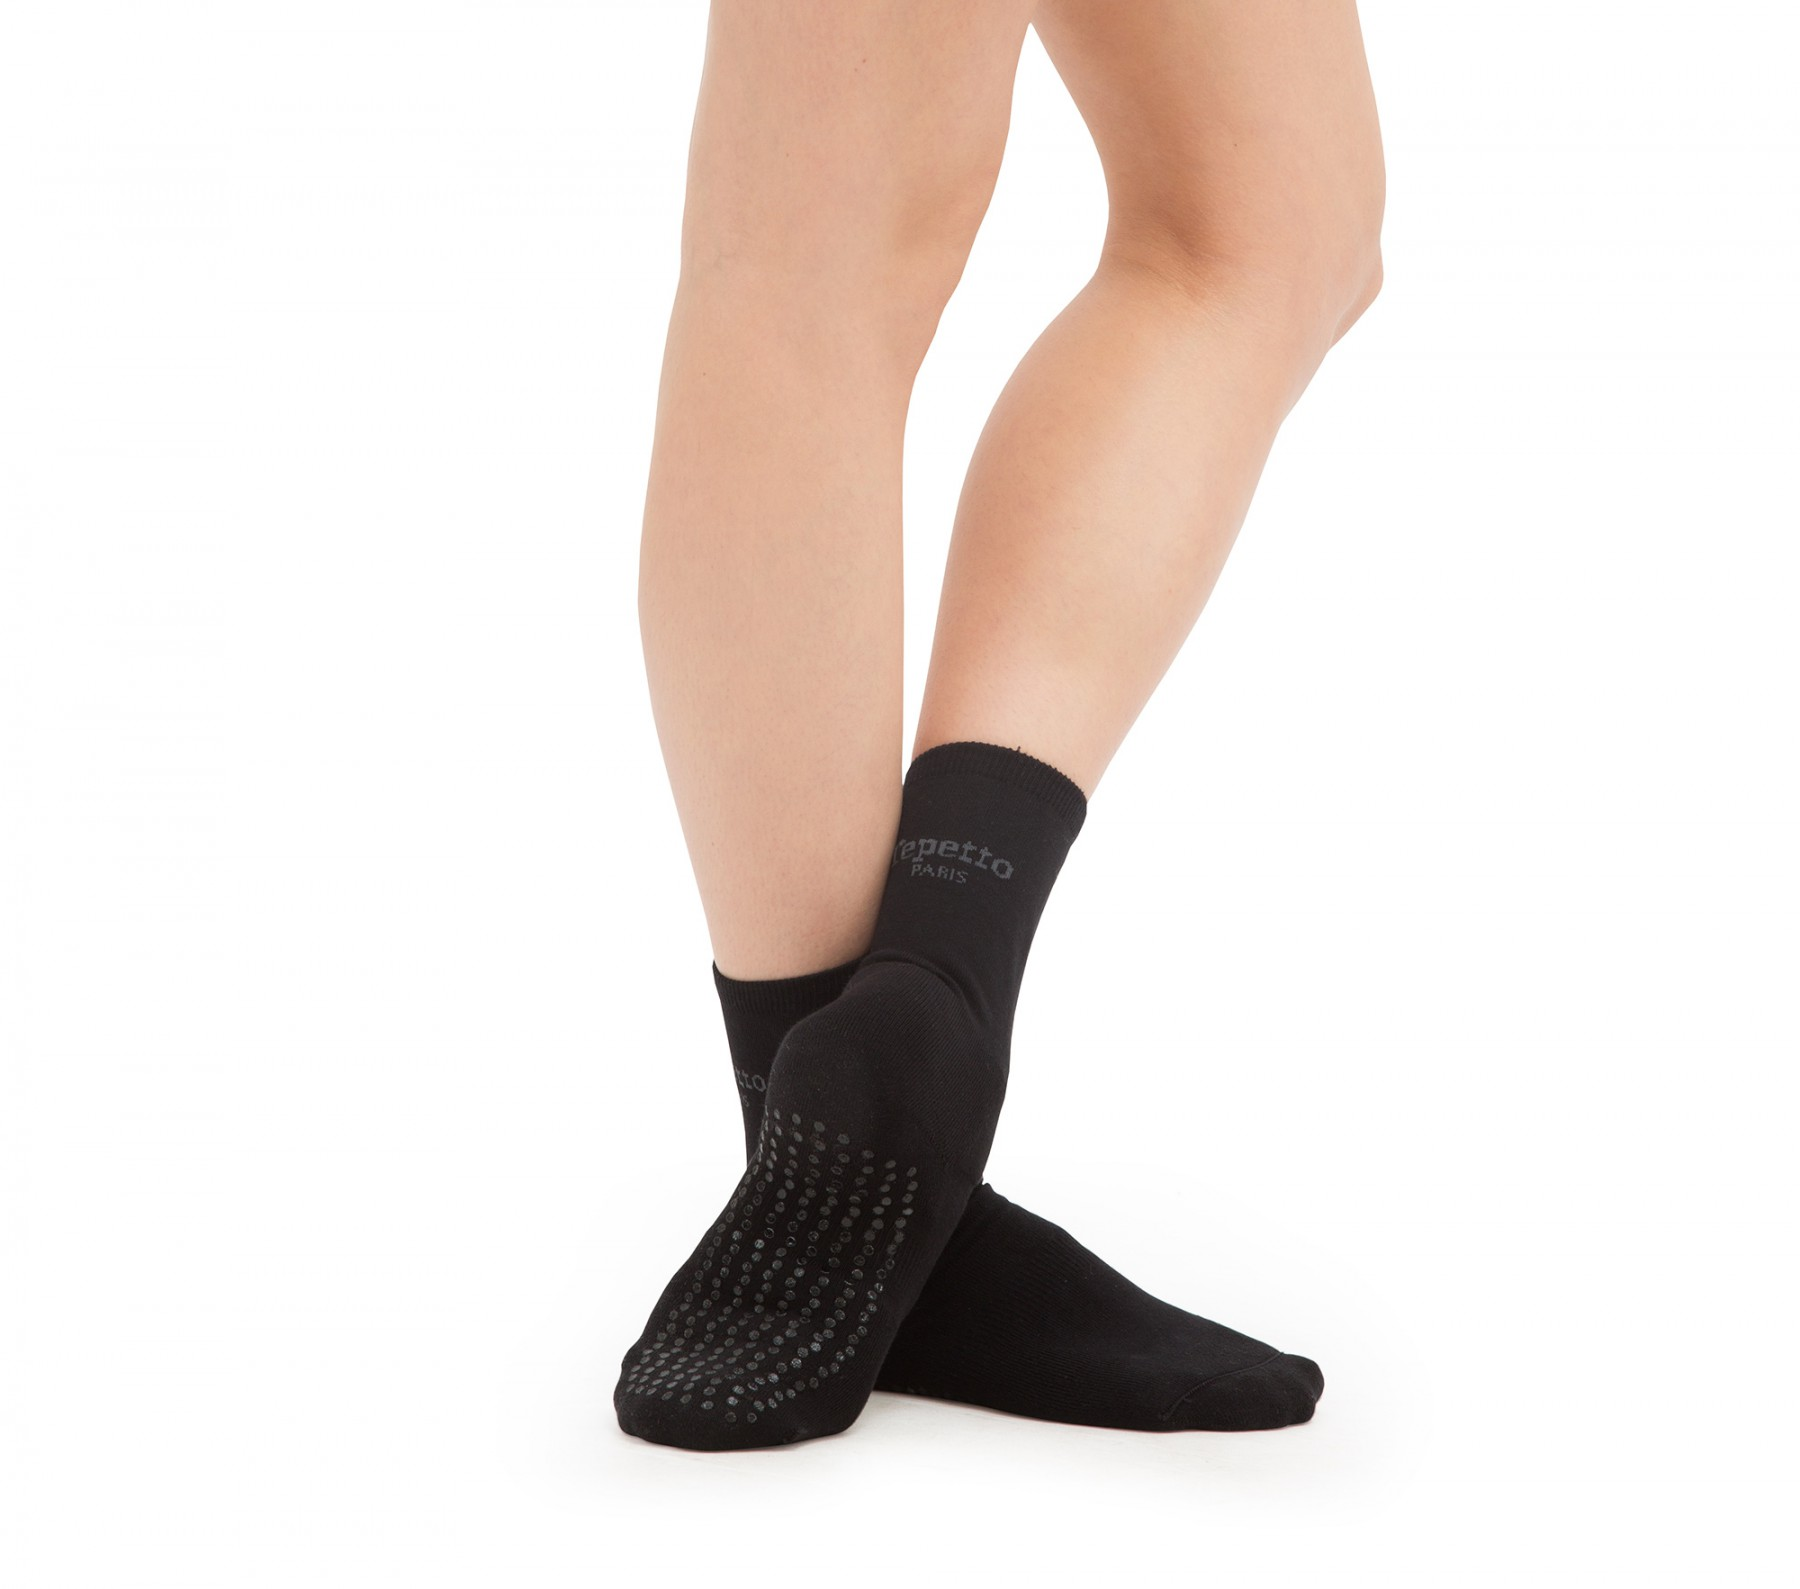 Anti slippery socks for warming up